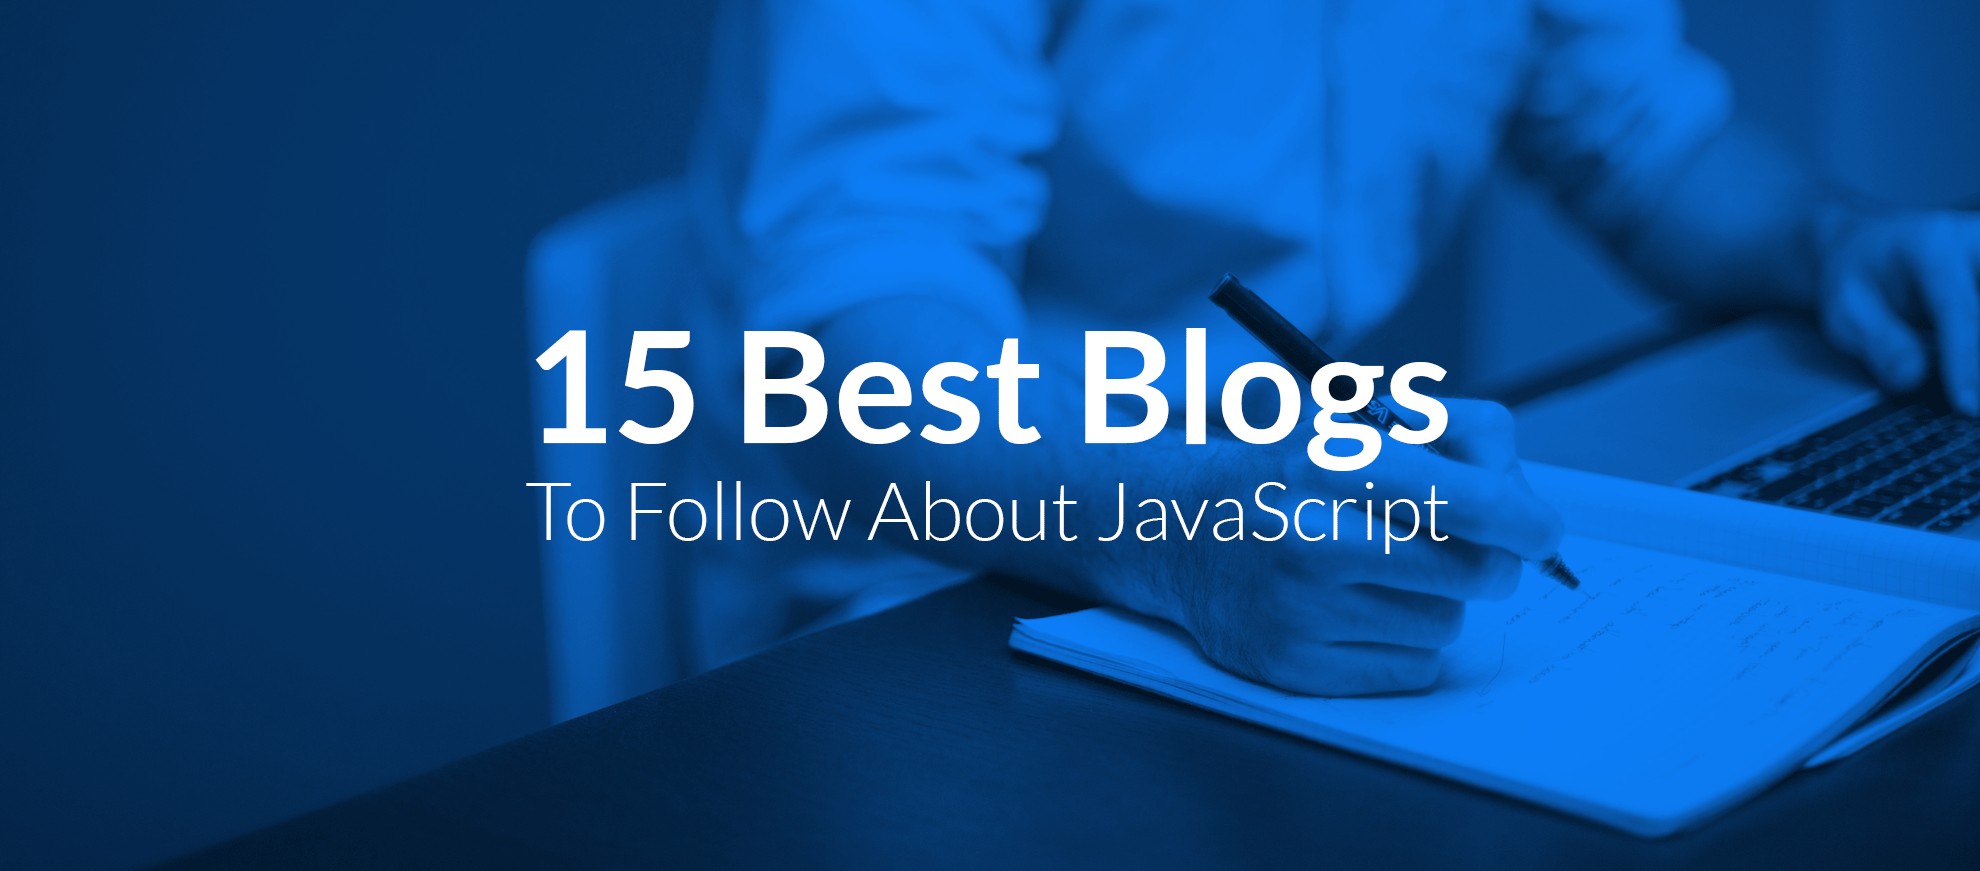 15 Best Blogs To Follow About JavaScript